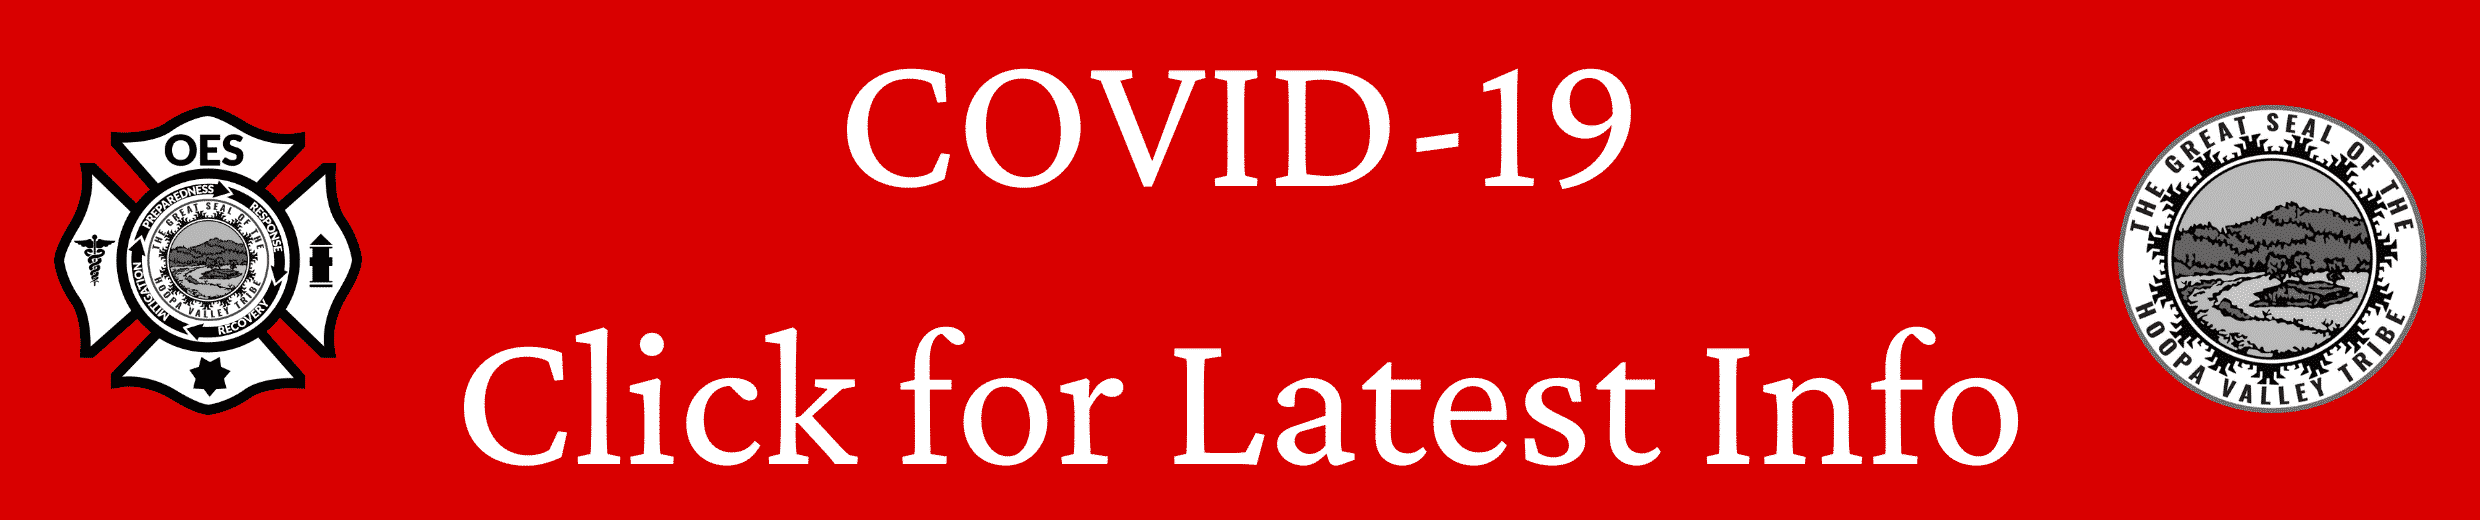 COVID-19-Click-for-Latest-Info